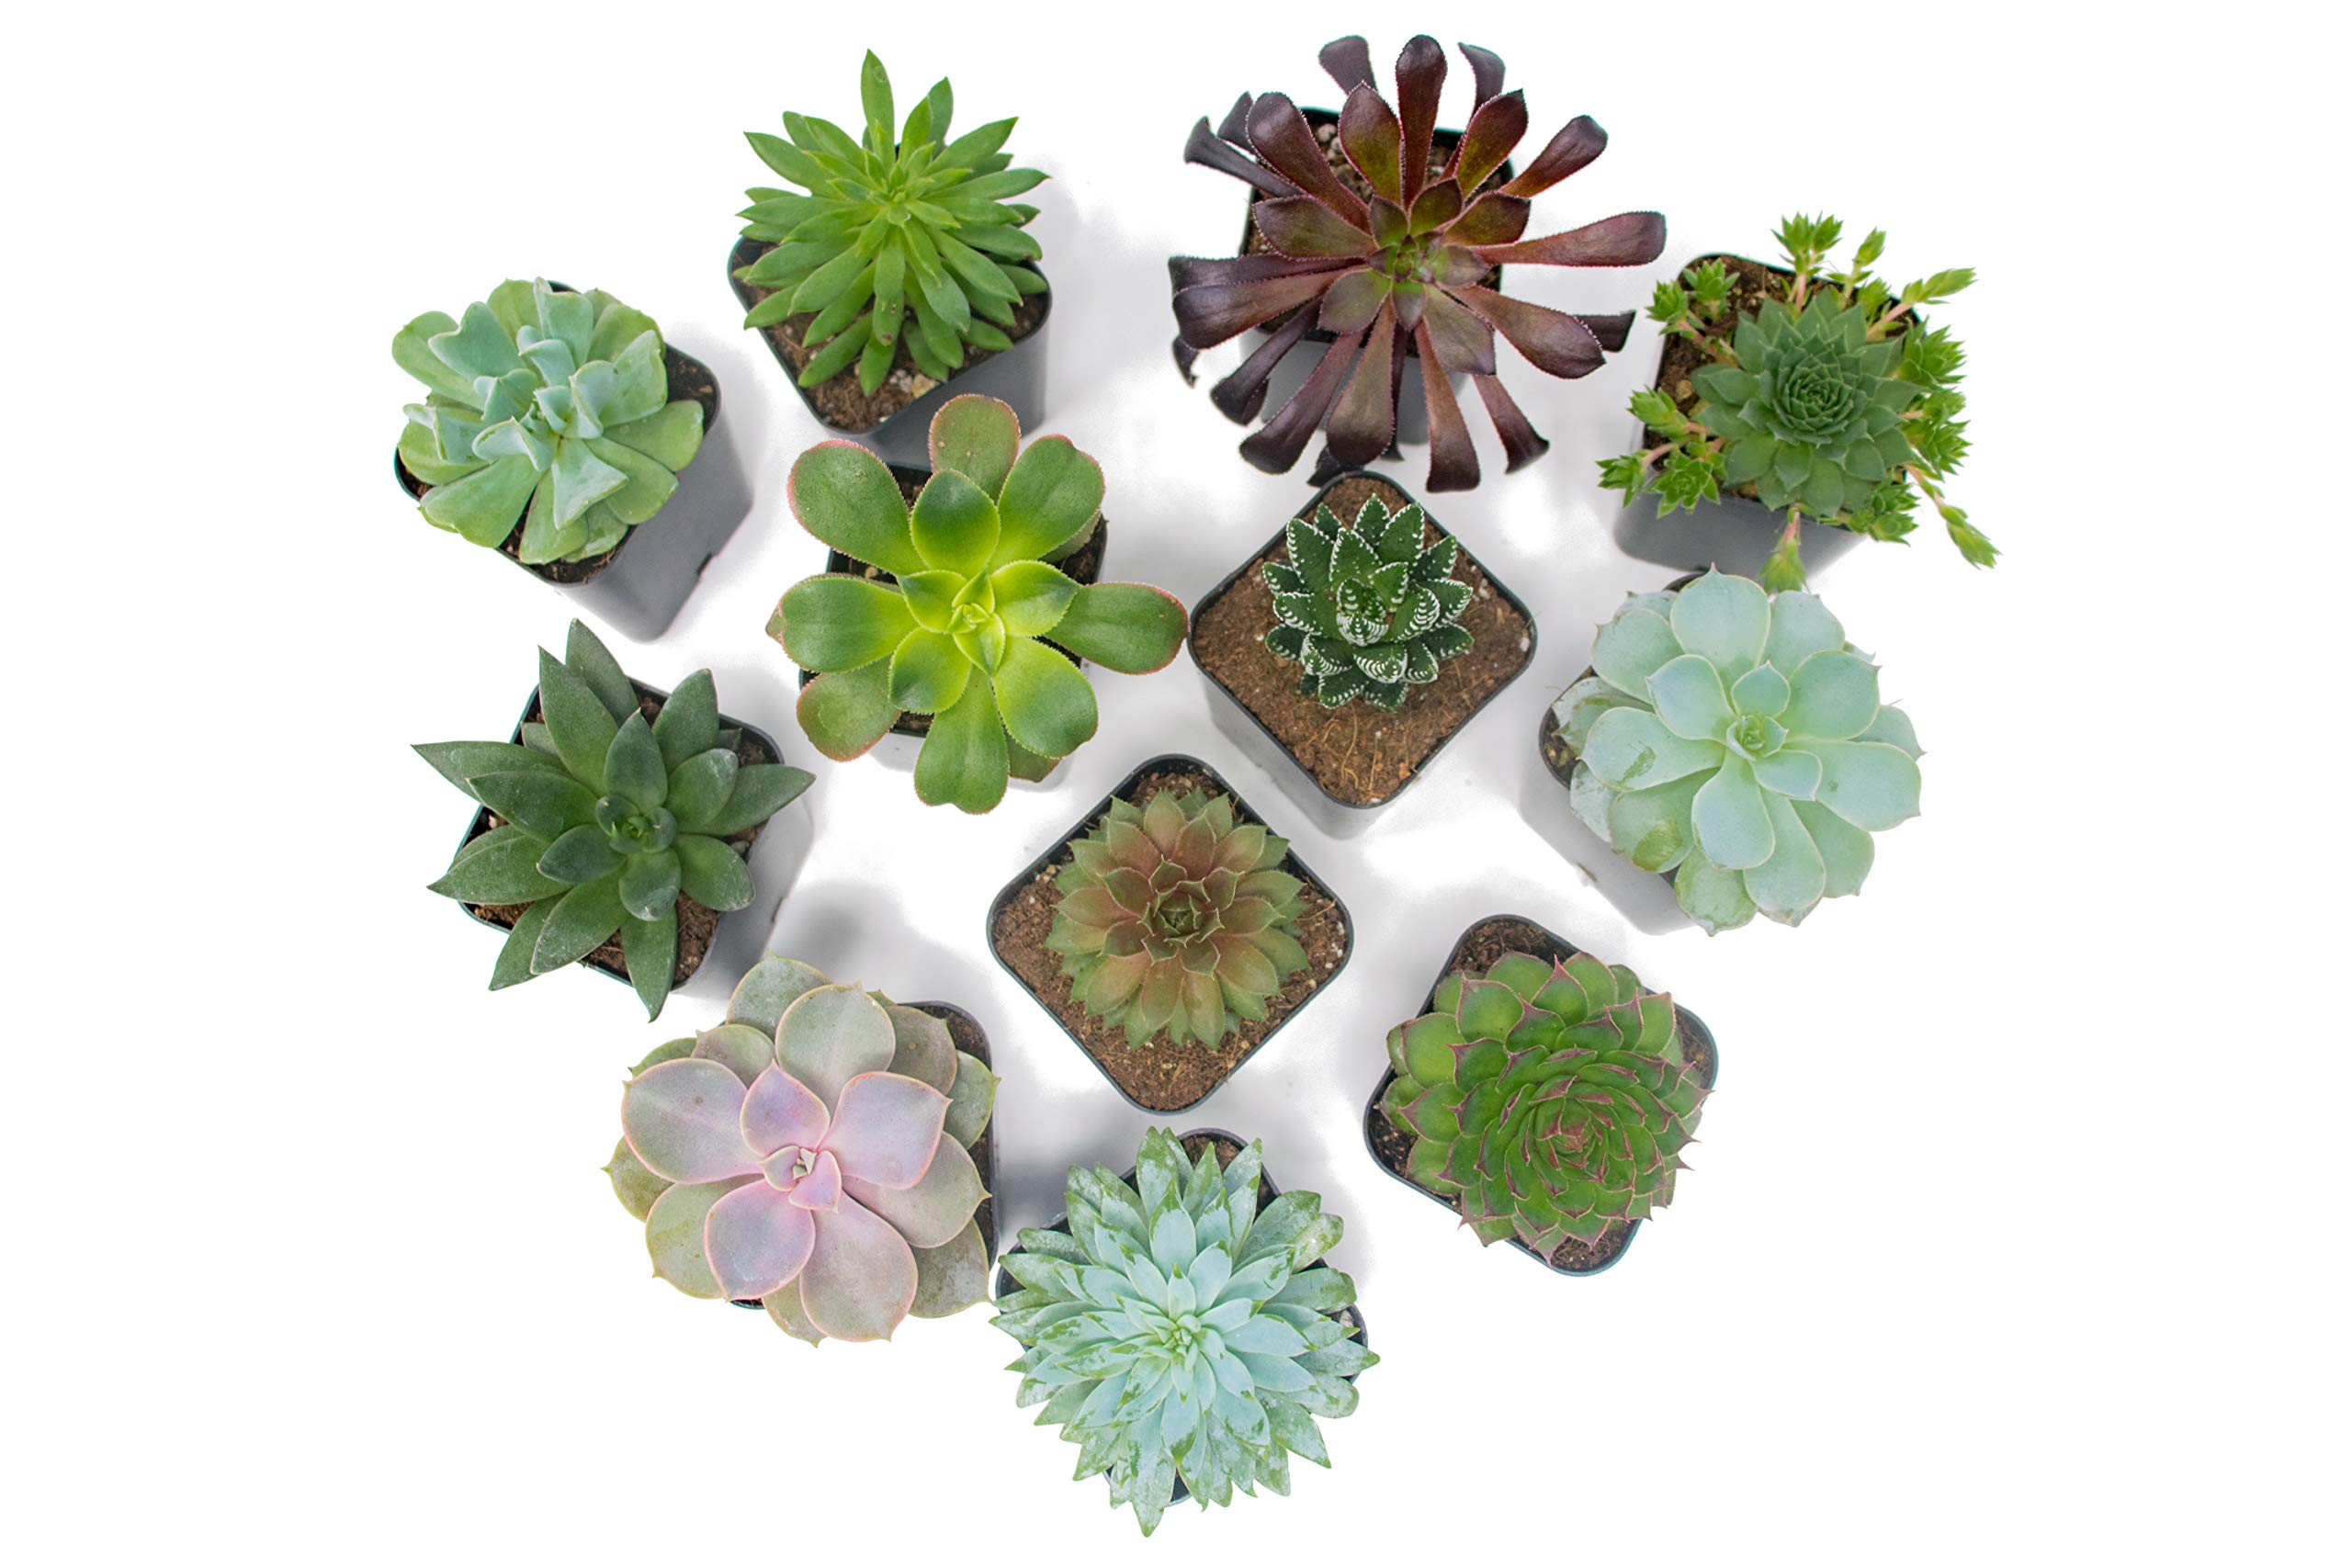 Succulent Plants (5 Pack), Fully Rooted in Planter Pots with Soil - Real Live Potted Succulents / Unique Indoor Cactus… 11 HAND SELECTED: Every pack of succulents we send is hand-picked. You will receive a unique collection of species that are FULLY ROOTED IN 2 INCH POTS, which will be similar to the product photos (see photo 2 for scale). Note that we rotate our nursery stock often, so the exact species we send changes every week. THE EASIEST HOUSE PLANTS: More appealing than artificial plastic or fake faux plants, and care is a cinch. If you think you can't keep houseplants alive, you're wrong; our succulents don't require fertilizer and can be planted in a decorative pot of your choice within seconds. DIY HOME DECOR: The possibilities are only limited by your imagination; display them in a plant holder, a wall mount, a geometric glass vase, or even in a live wreath. Because of their amazingly low care requirements, they can even make the perfect desk centerpiece for your office.